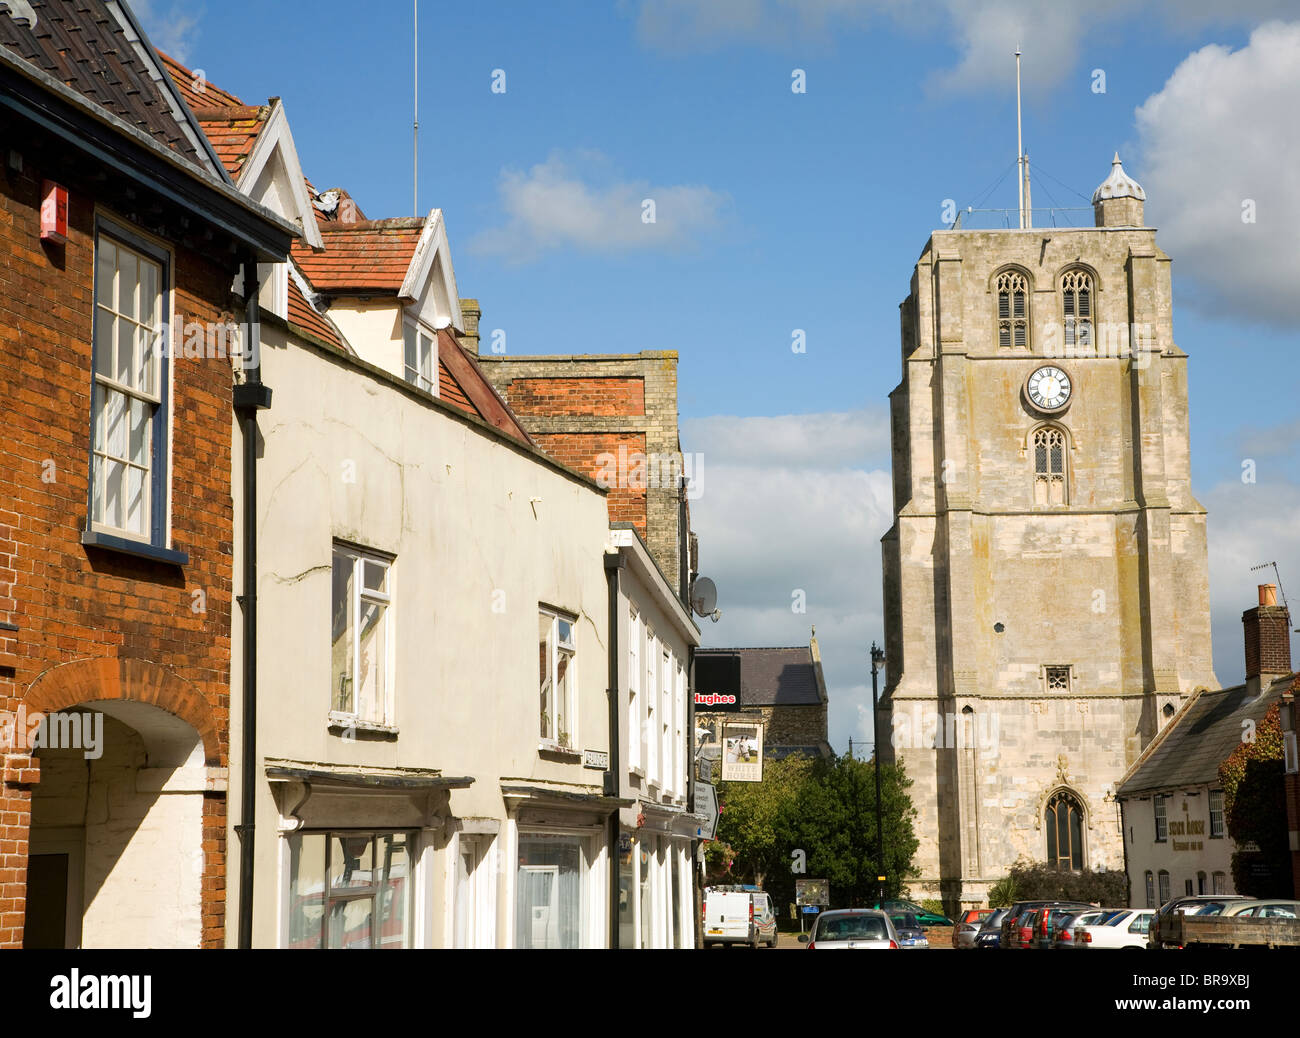 Church tower and historic buildings, Beccles, Suffolk, England - Stock Image